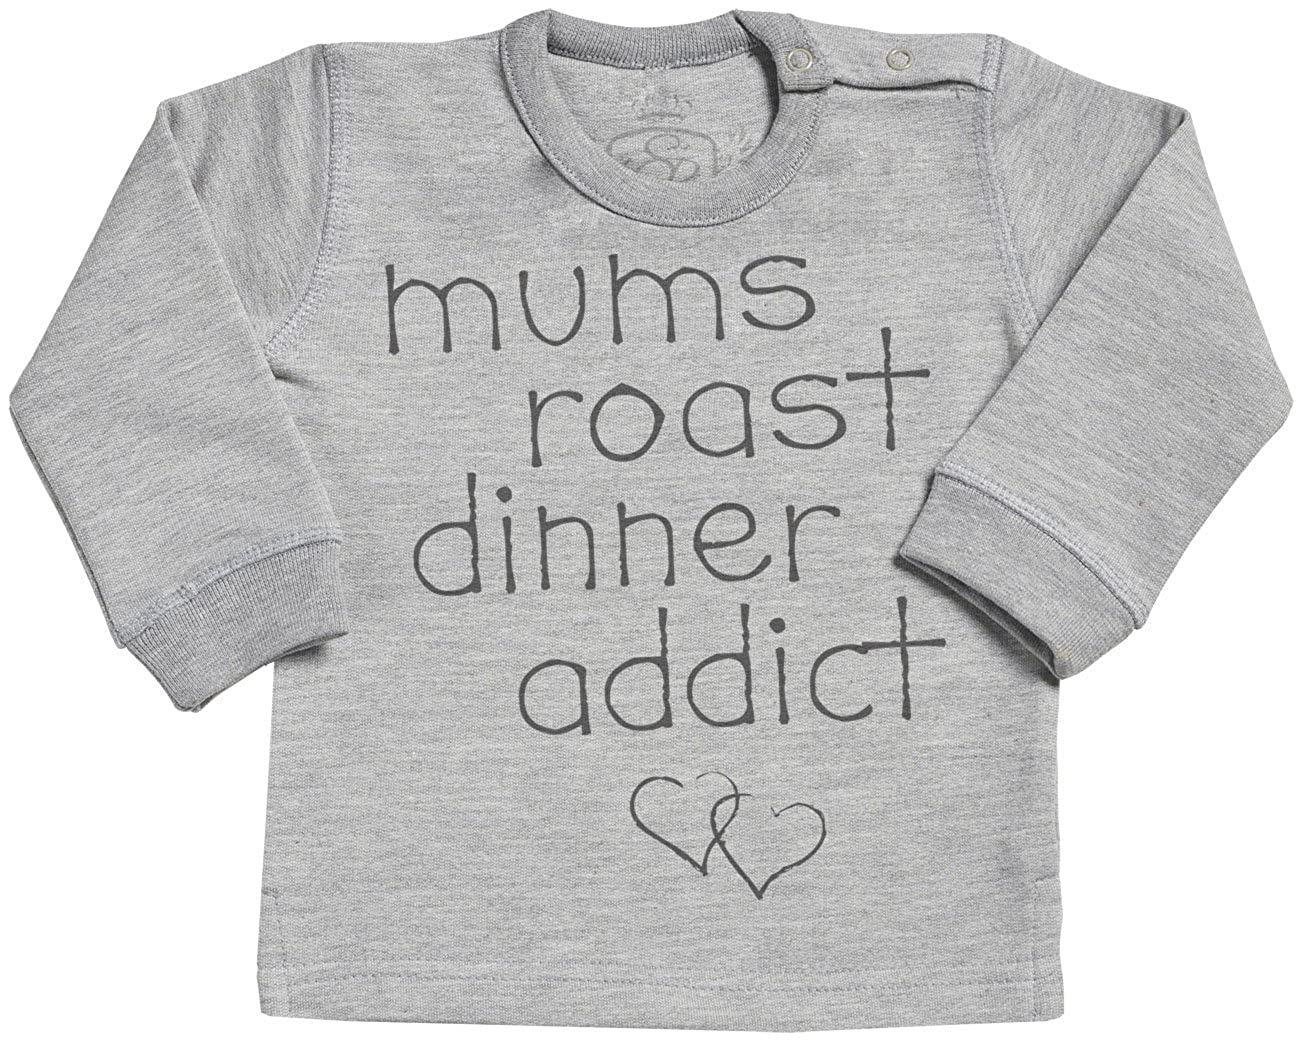 Baby ClothingPersonalised Custo m Roast Dinner Addict Text Long Sleave Baby Sweater SR Baby Sweater Gift Baby Sweatshirt